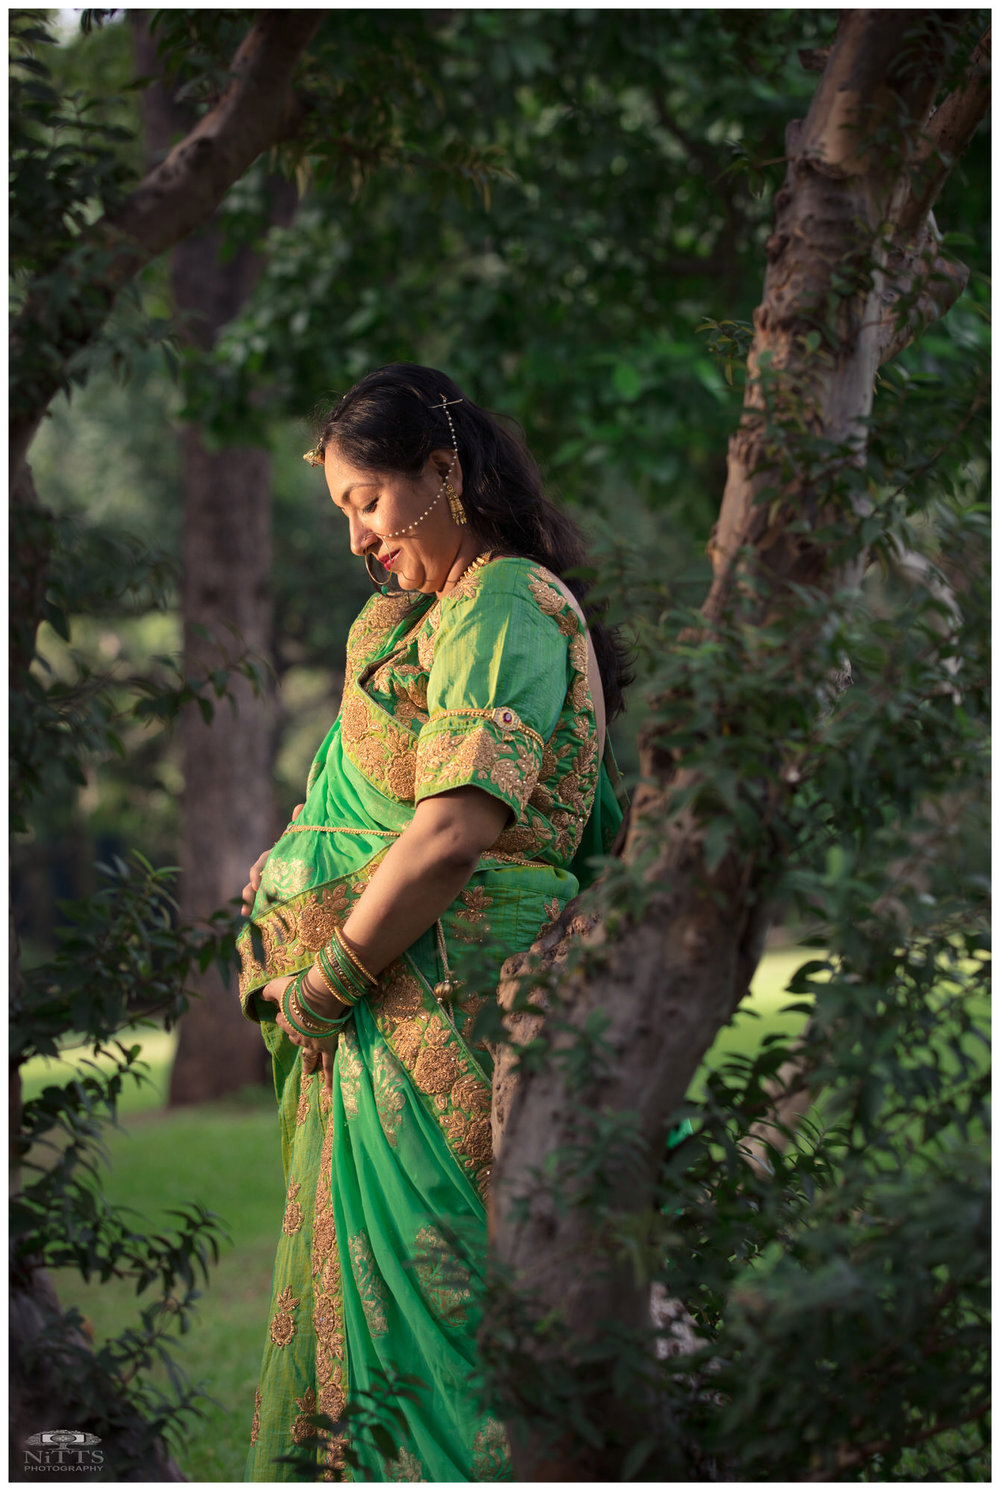 Priya's Maternity Shoot-October 17, 2017-23.JPG